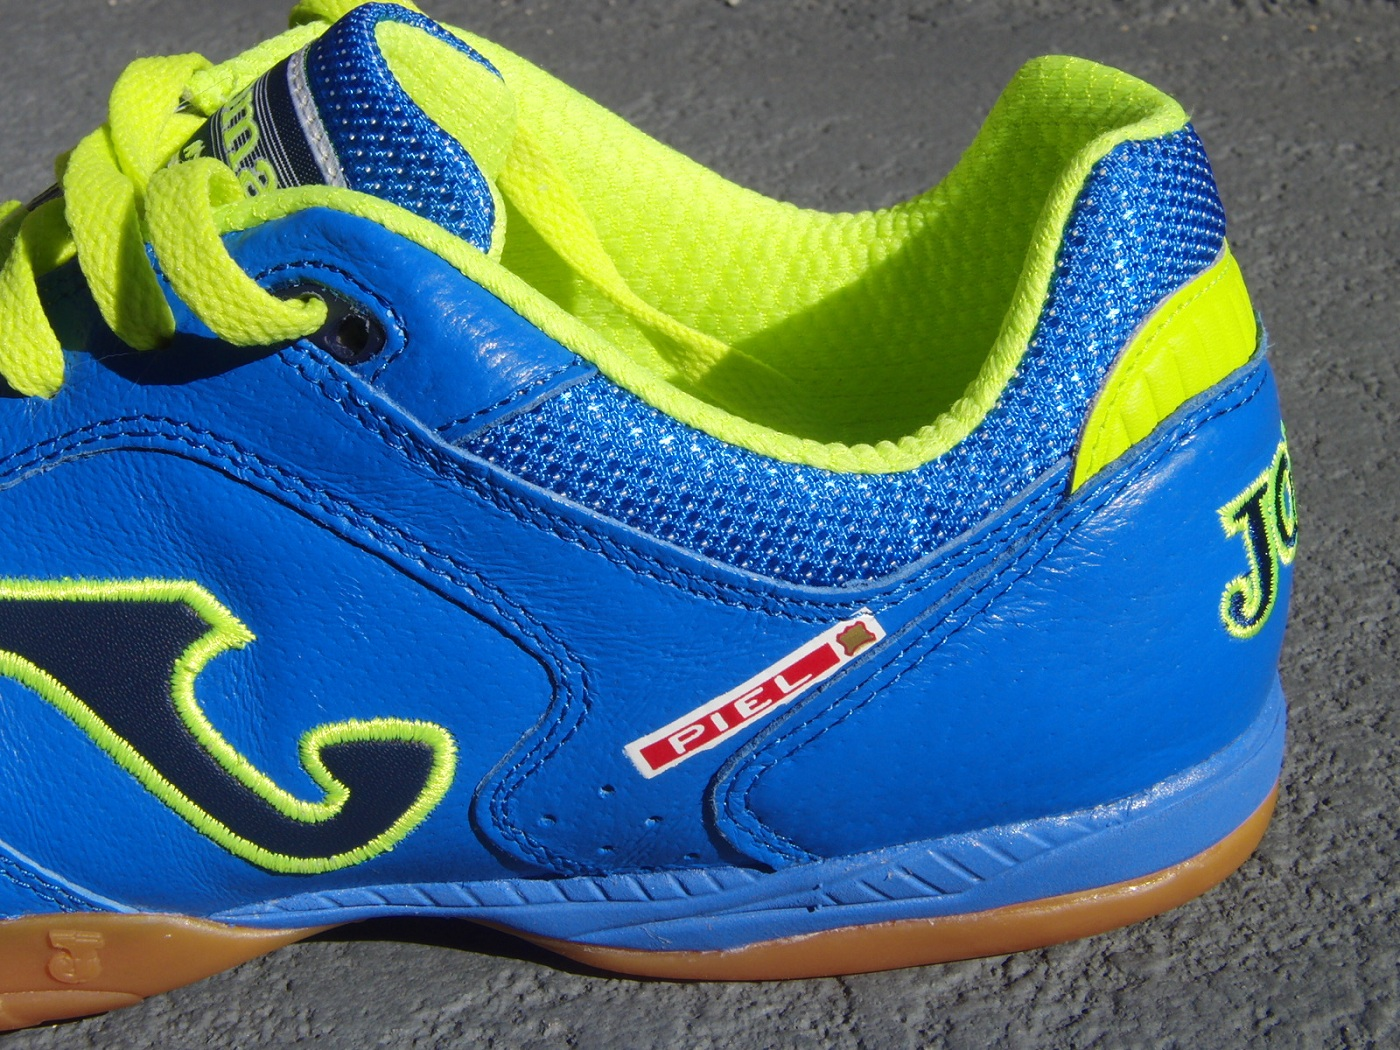 Joma Soccer Shoes Reviews